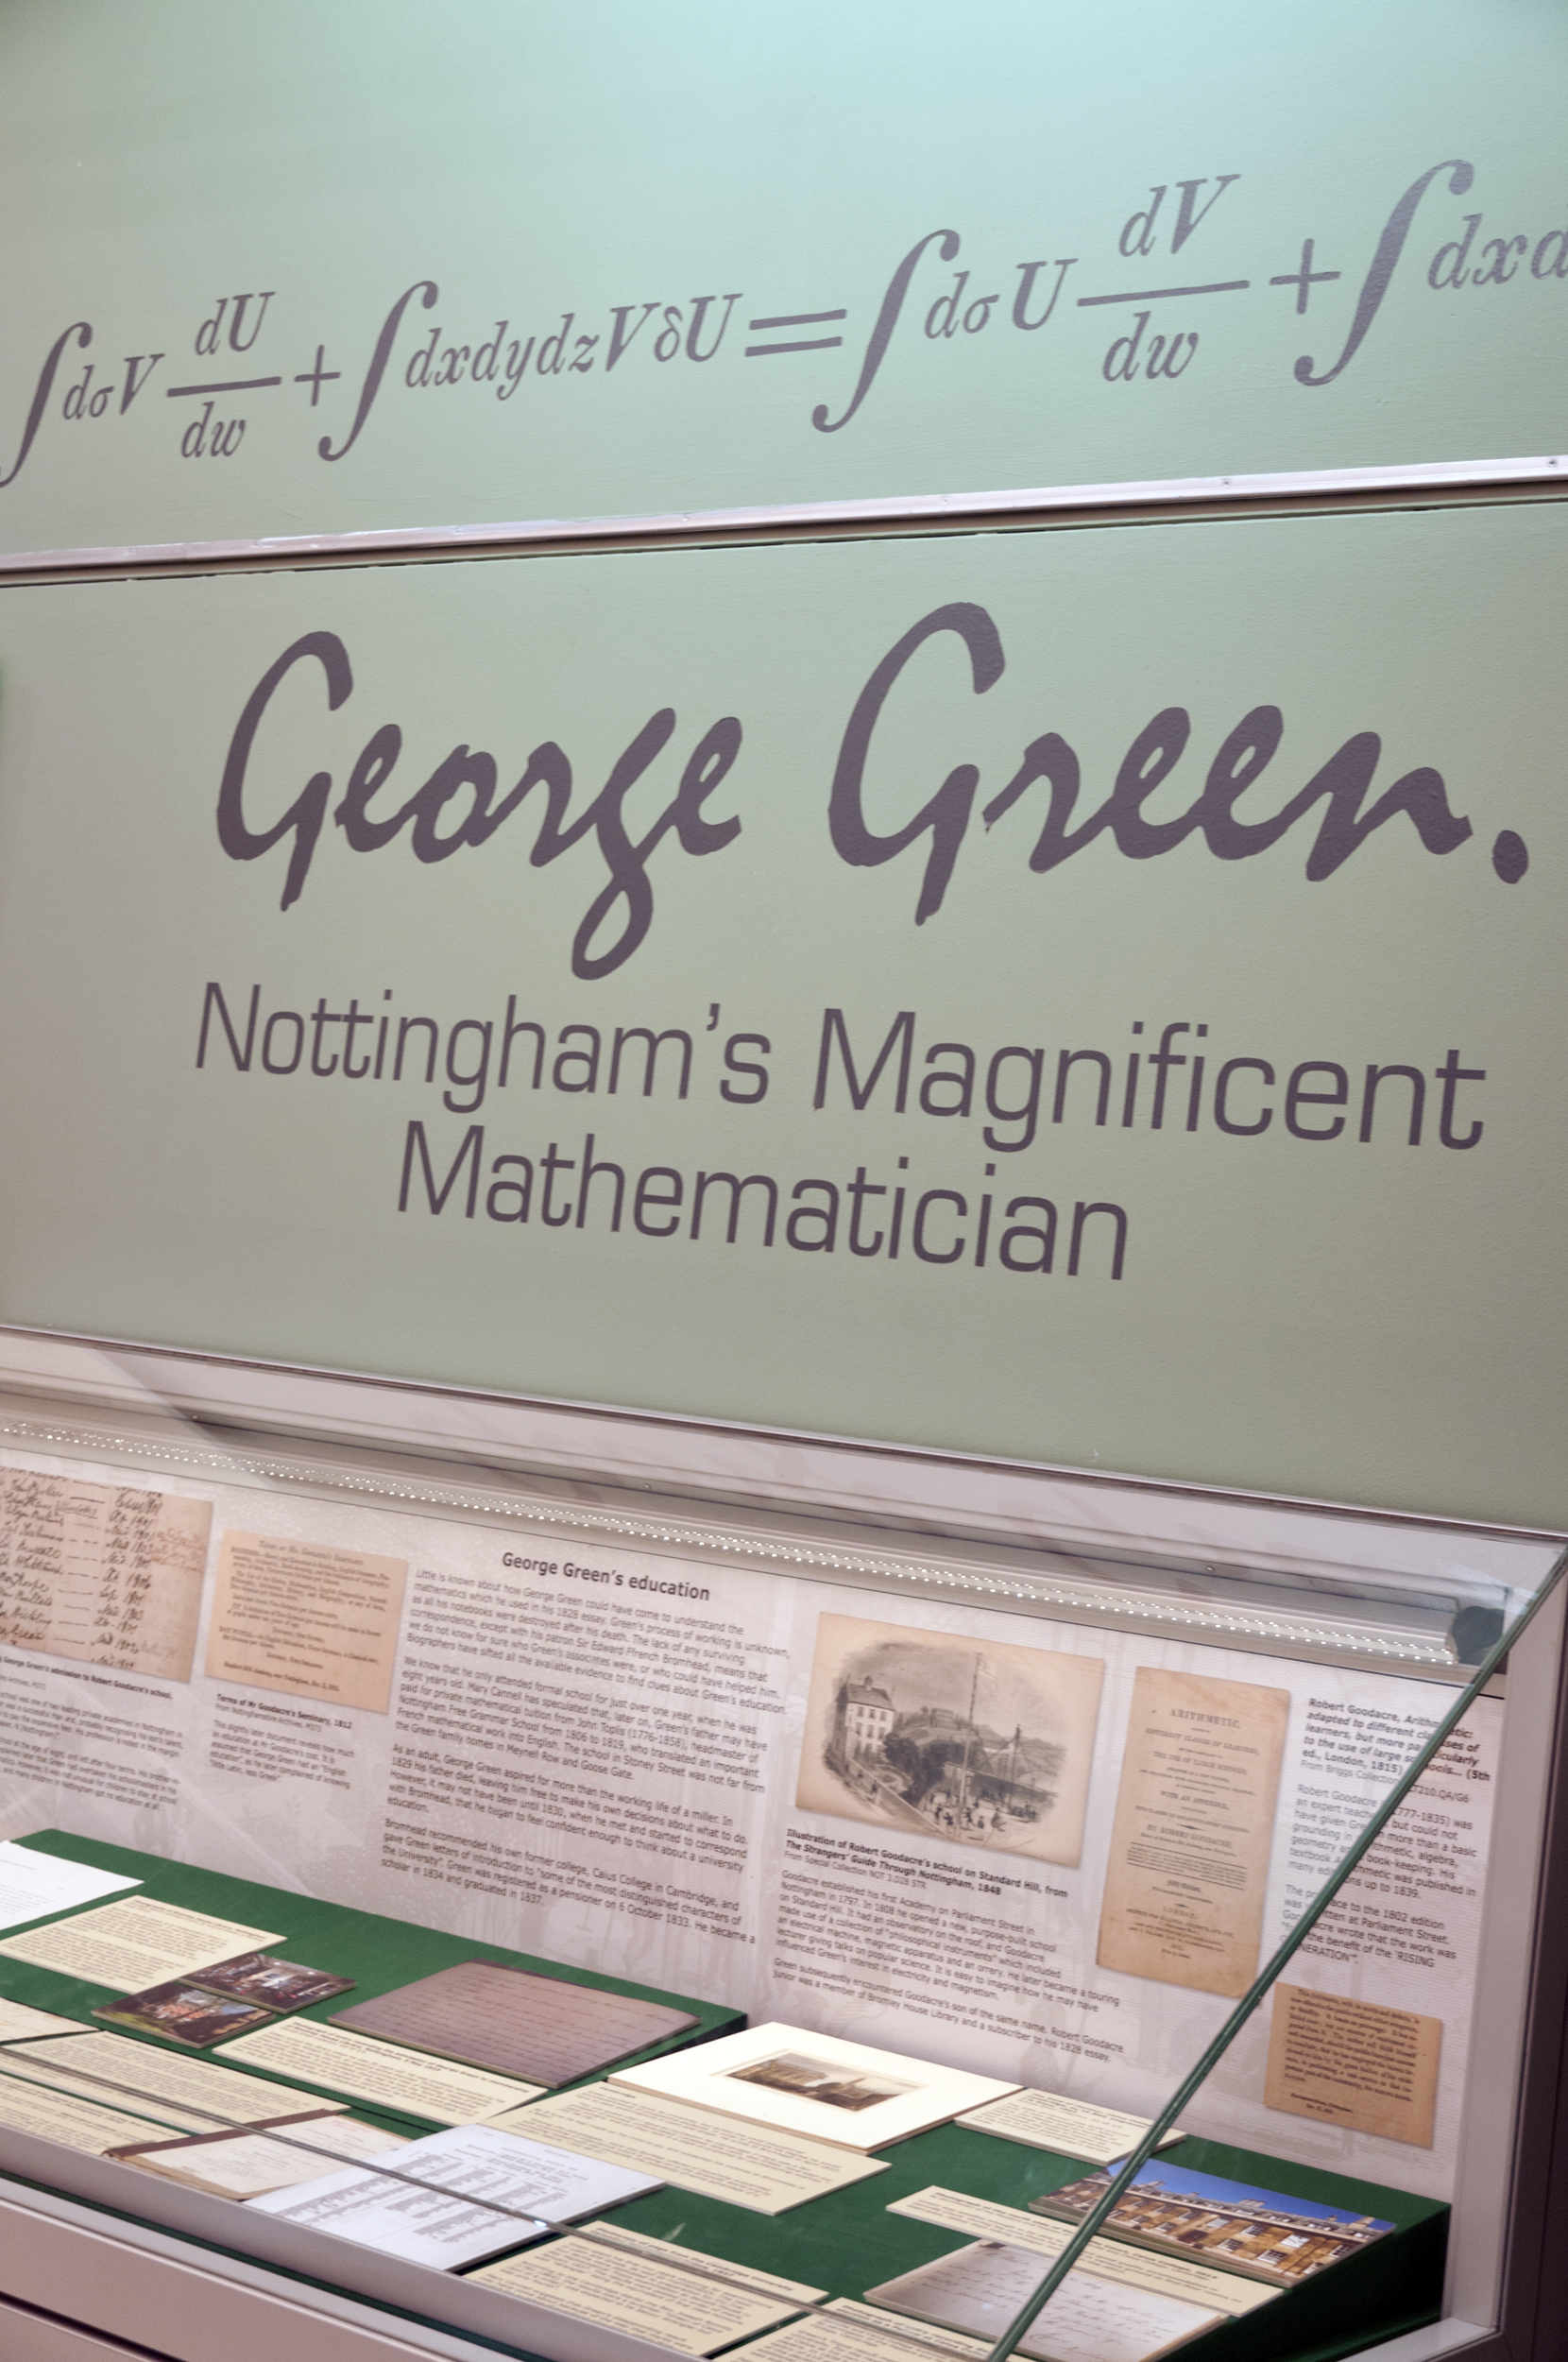 george green mathematician alchetron the social encyclopedia george green mathematician george green nottingham39s magnificent mathematician